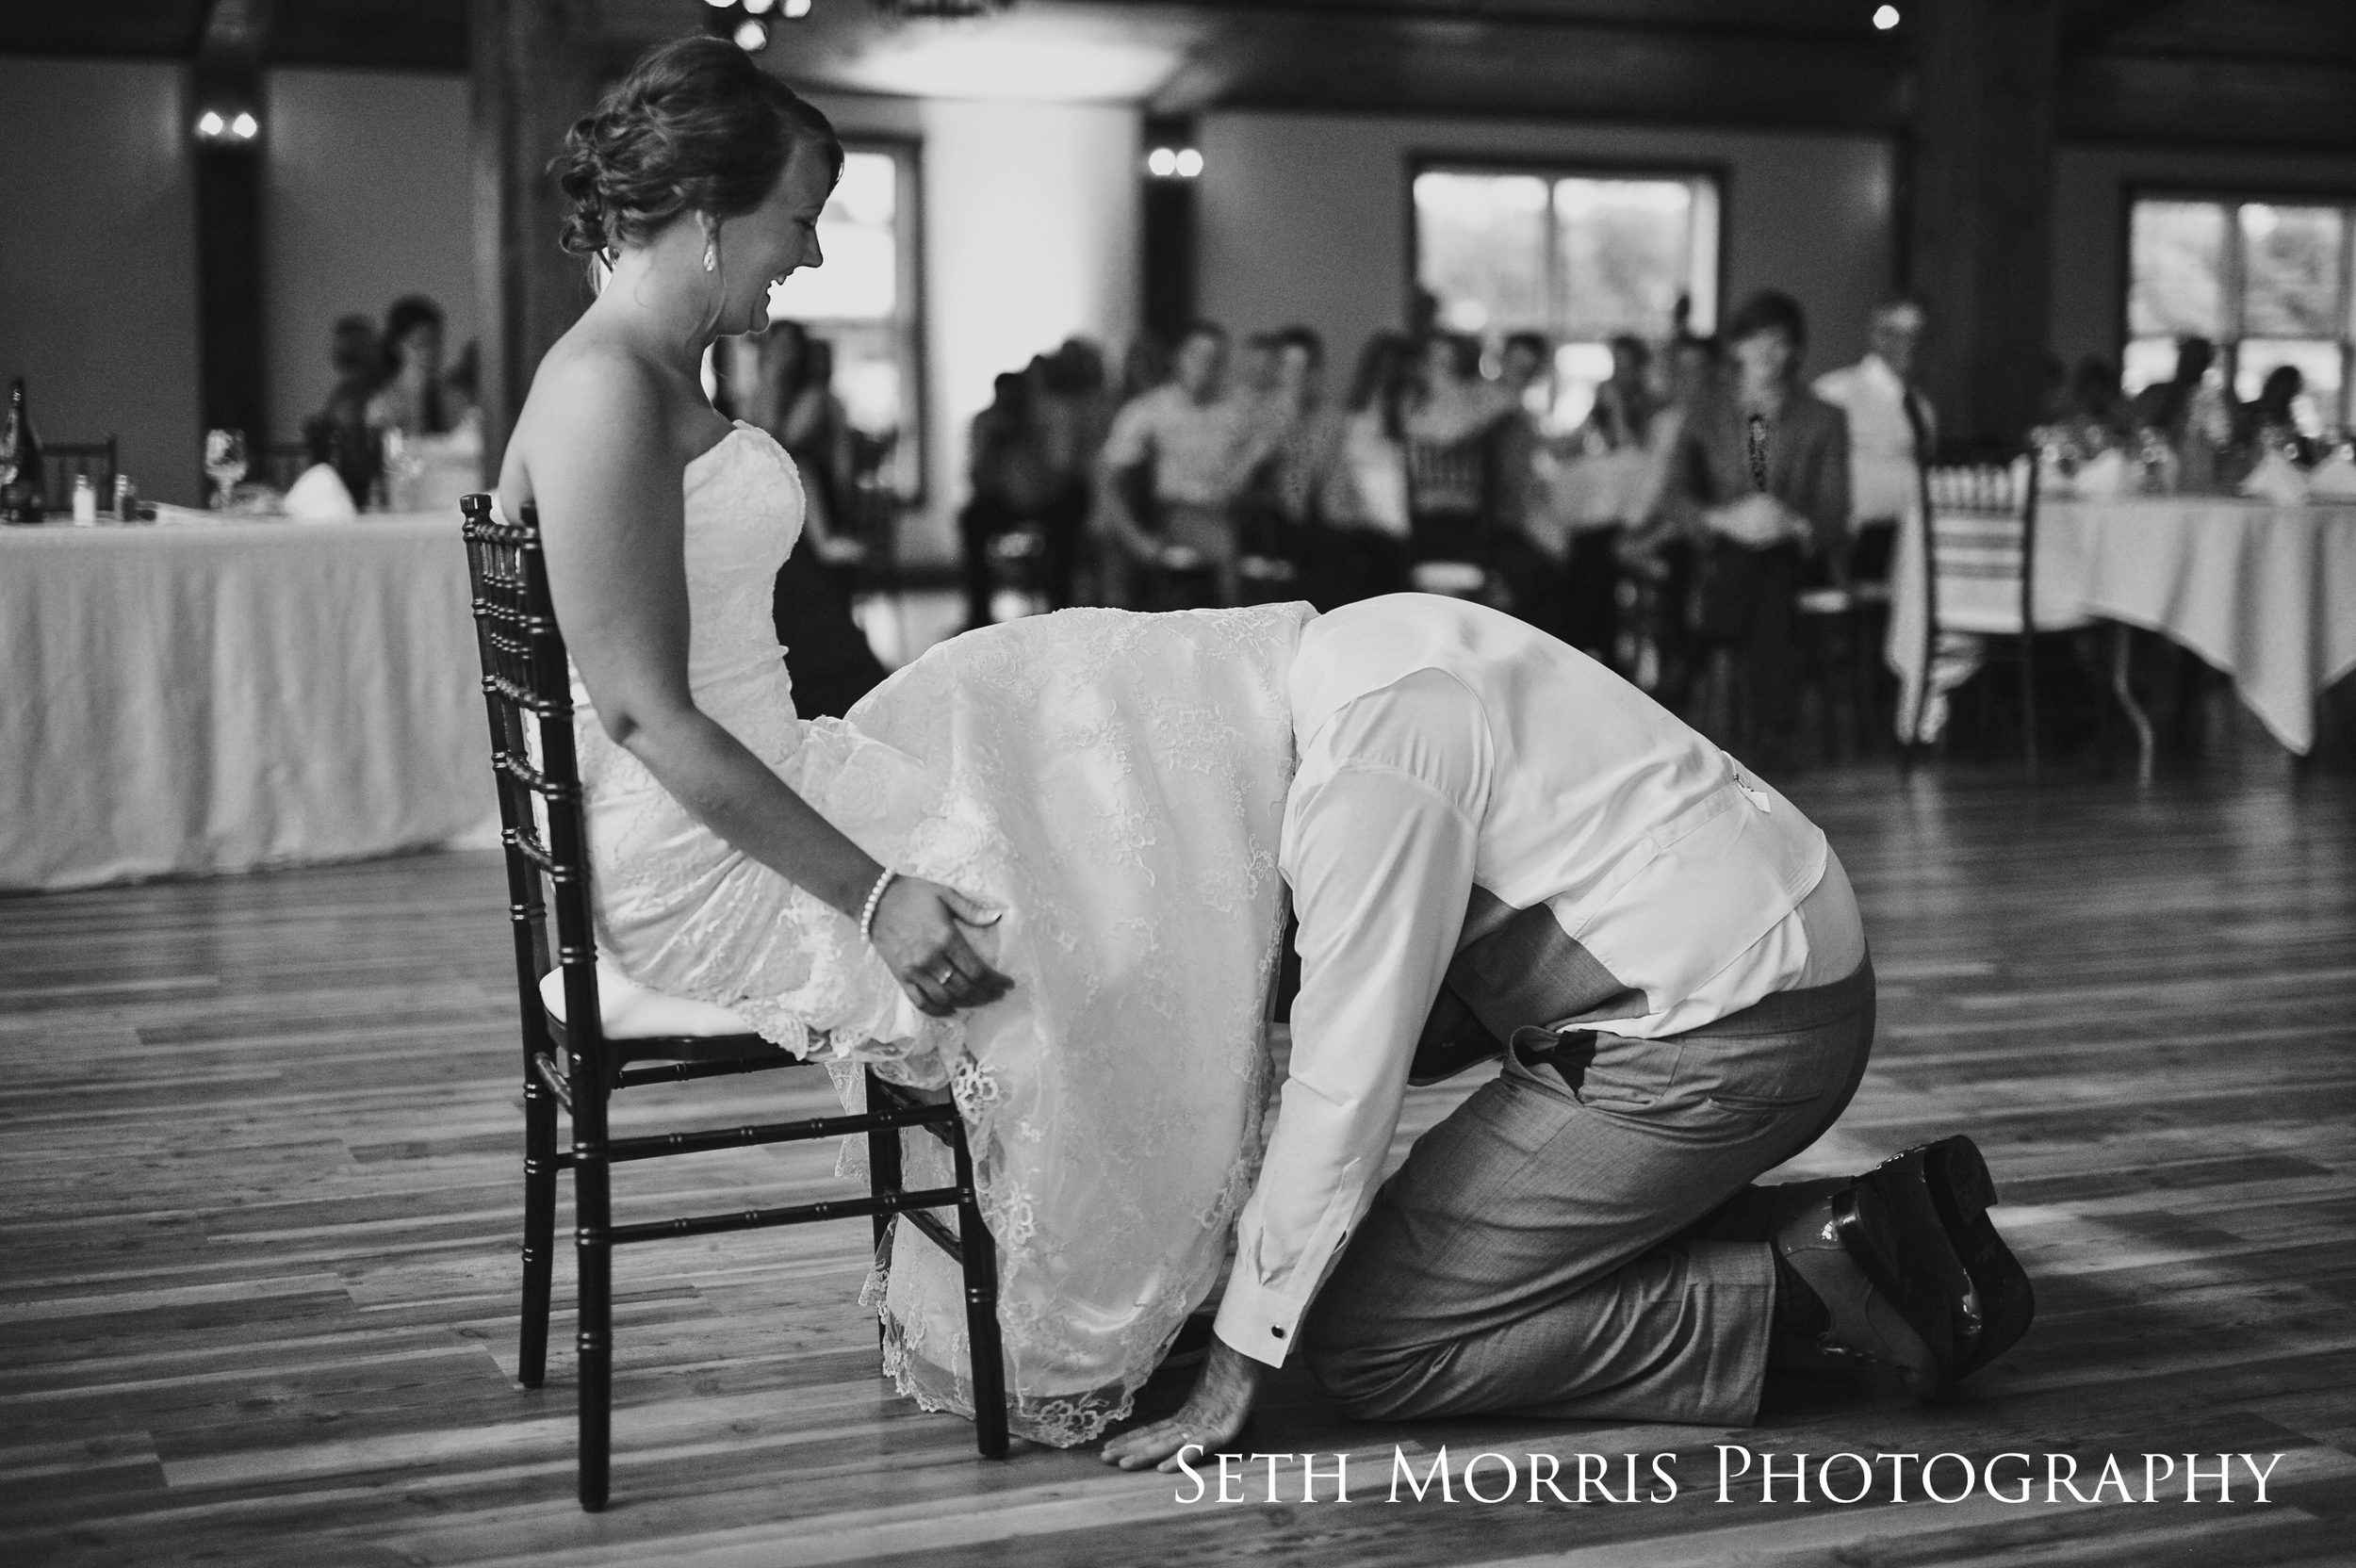 hornbaker-barn-wedding-photo-princeton-photographer-86.jpg